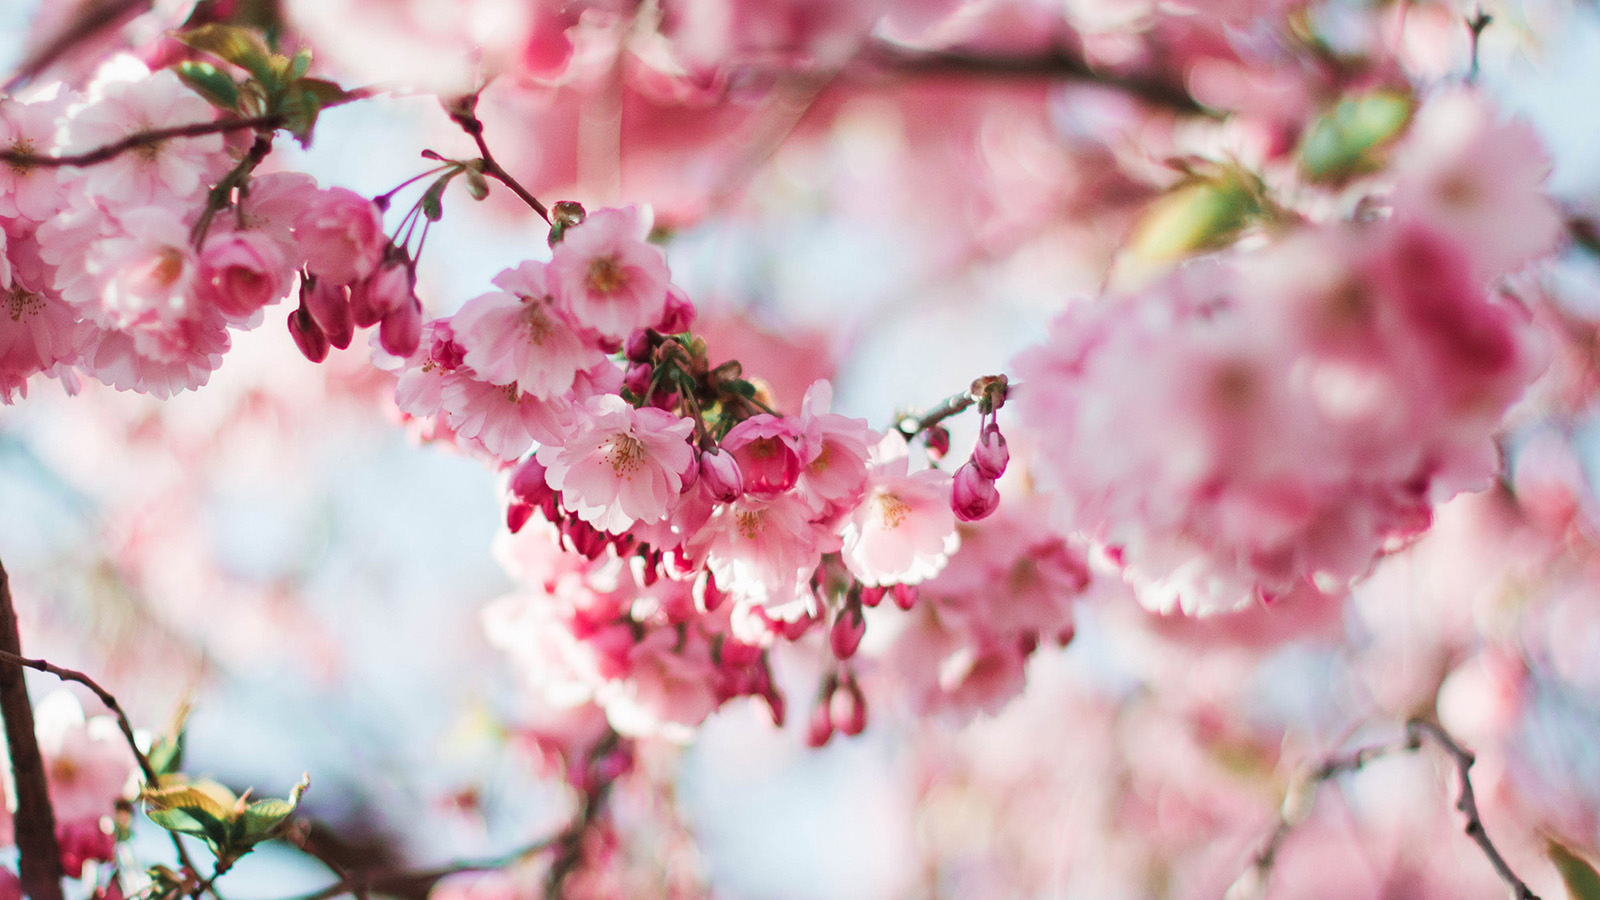 4k Fall Wallpaper For Phone Nx72 Spring Cherry Blossom Tree Flower Pink Nature Wallpaper